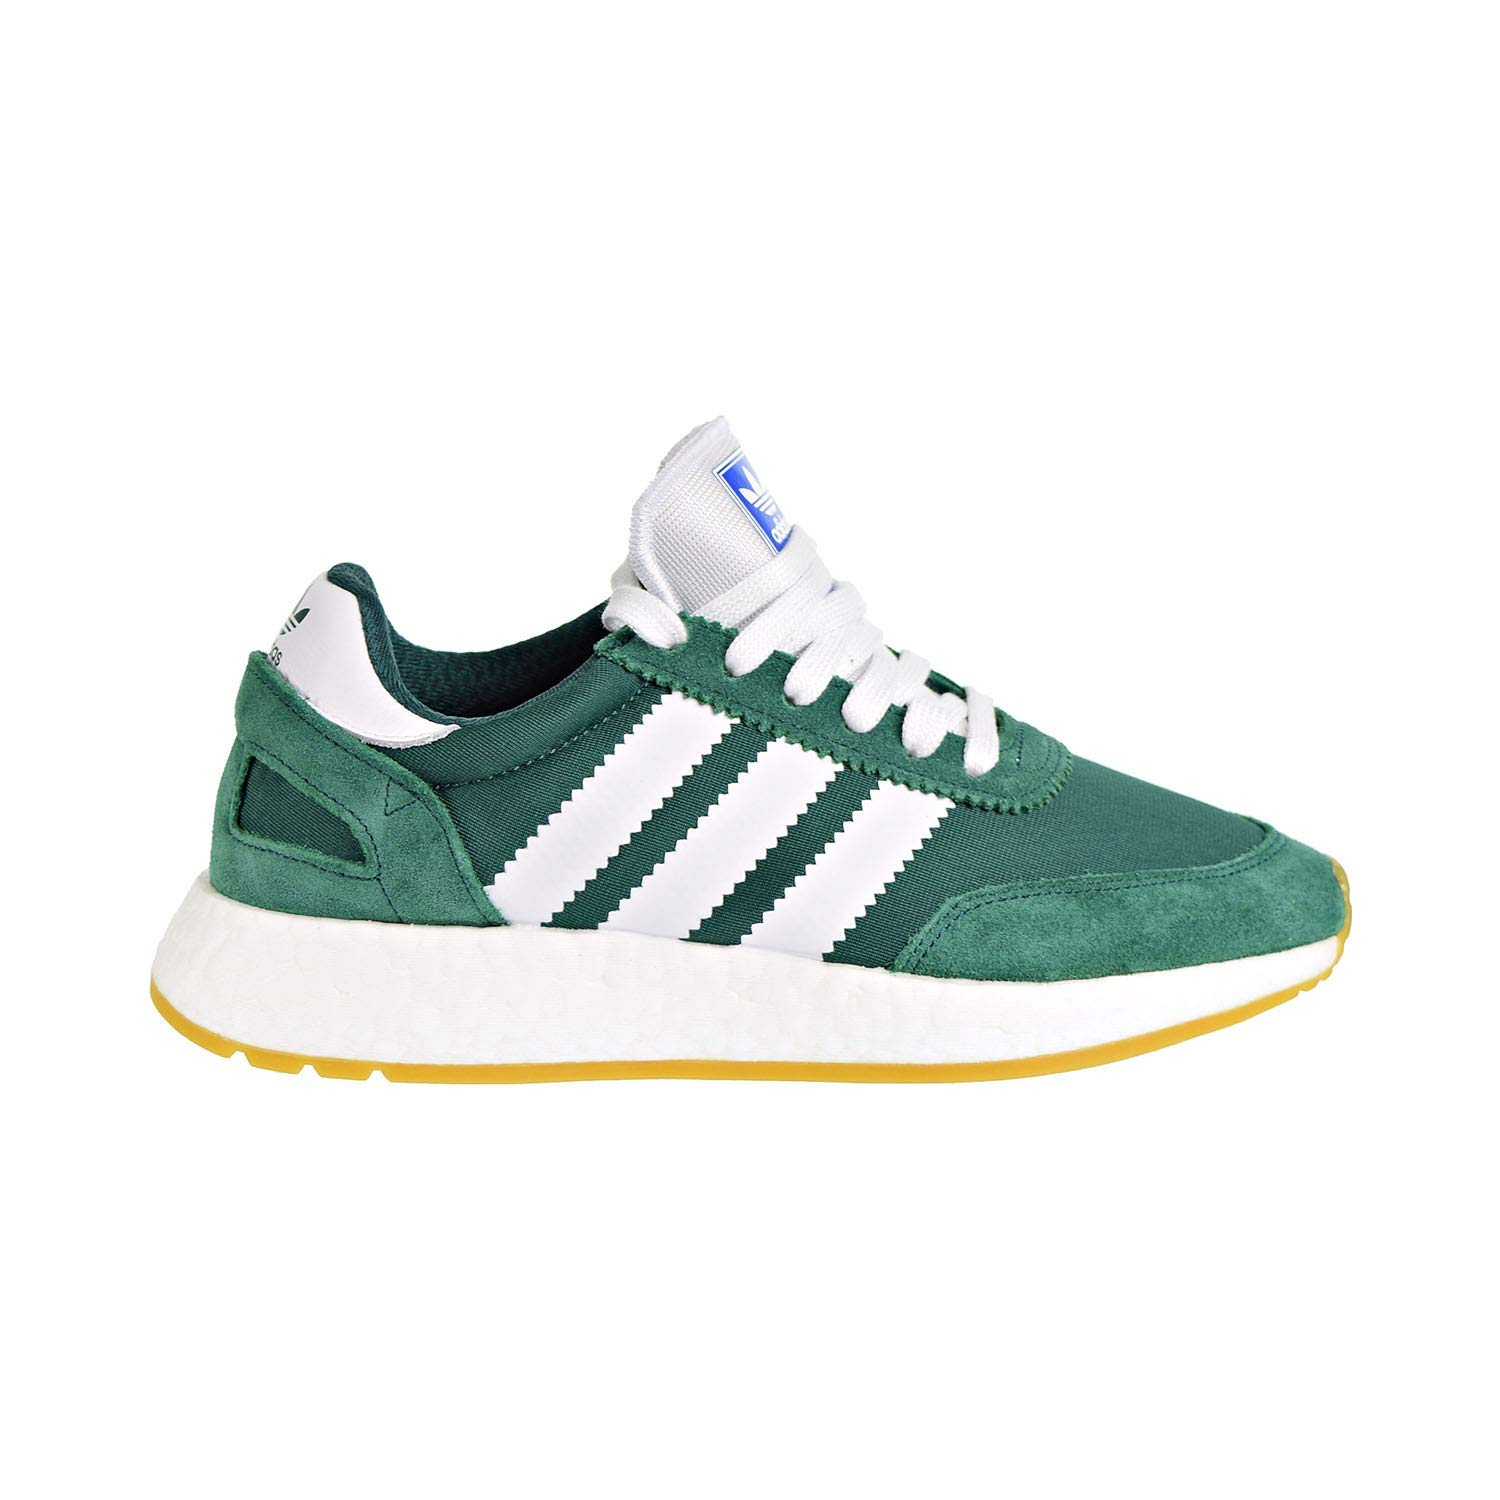 de múltiples fines nudo distancia  Buy adidas Women's I 5923 Runner Casual Shoes Cg6022 Size 8 8 M US  Collegiate Green/Cloud White-Gum at Amazon.in